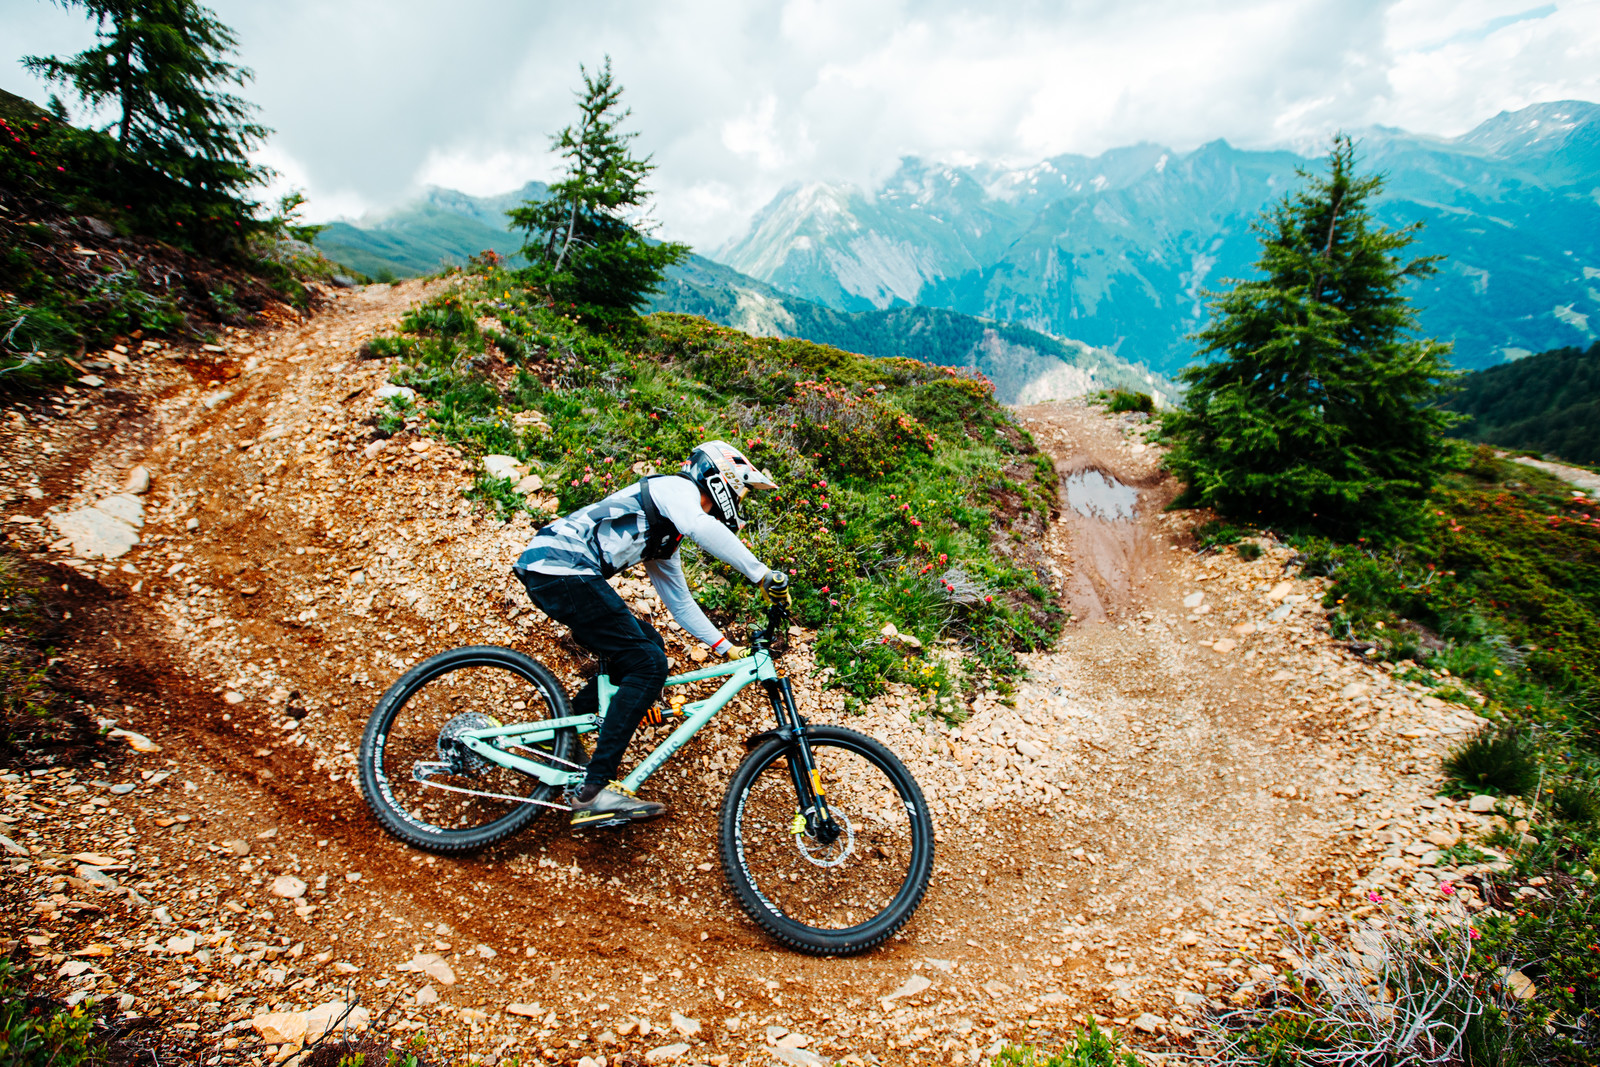 Gabriel Wibmer Rides in Style on his Local Trails to Launch AMS Ambassador Role